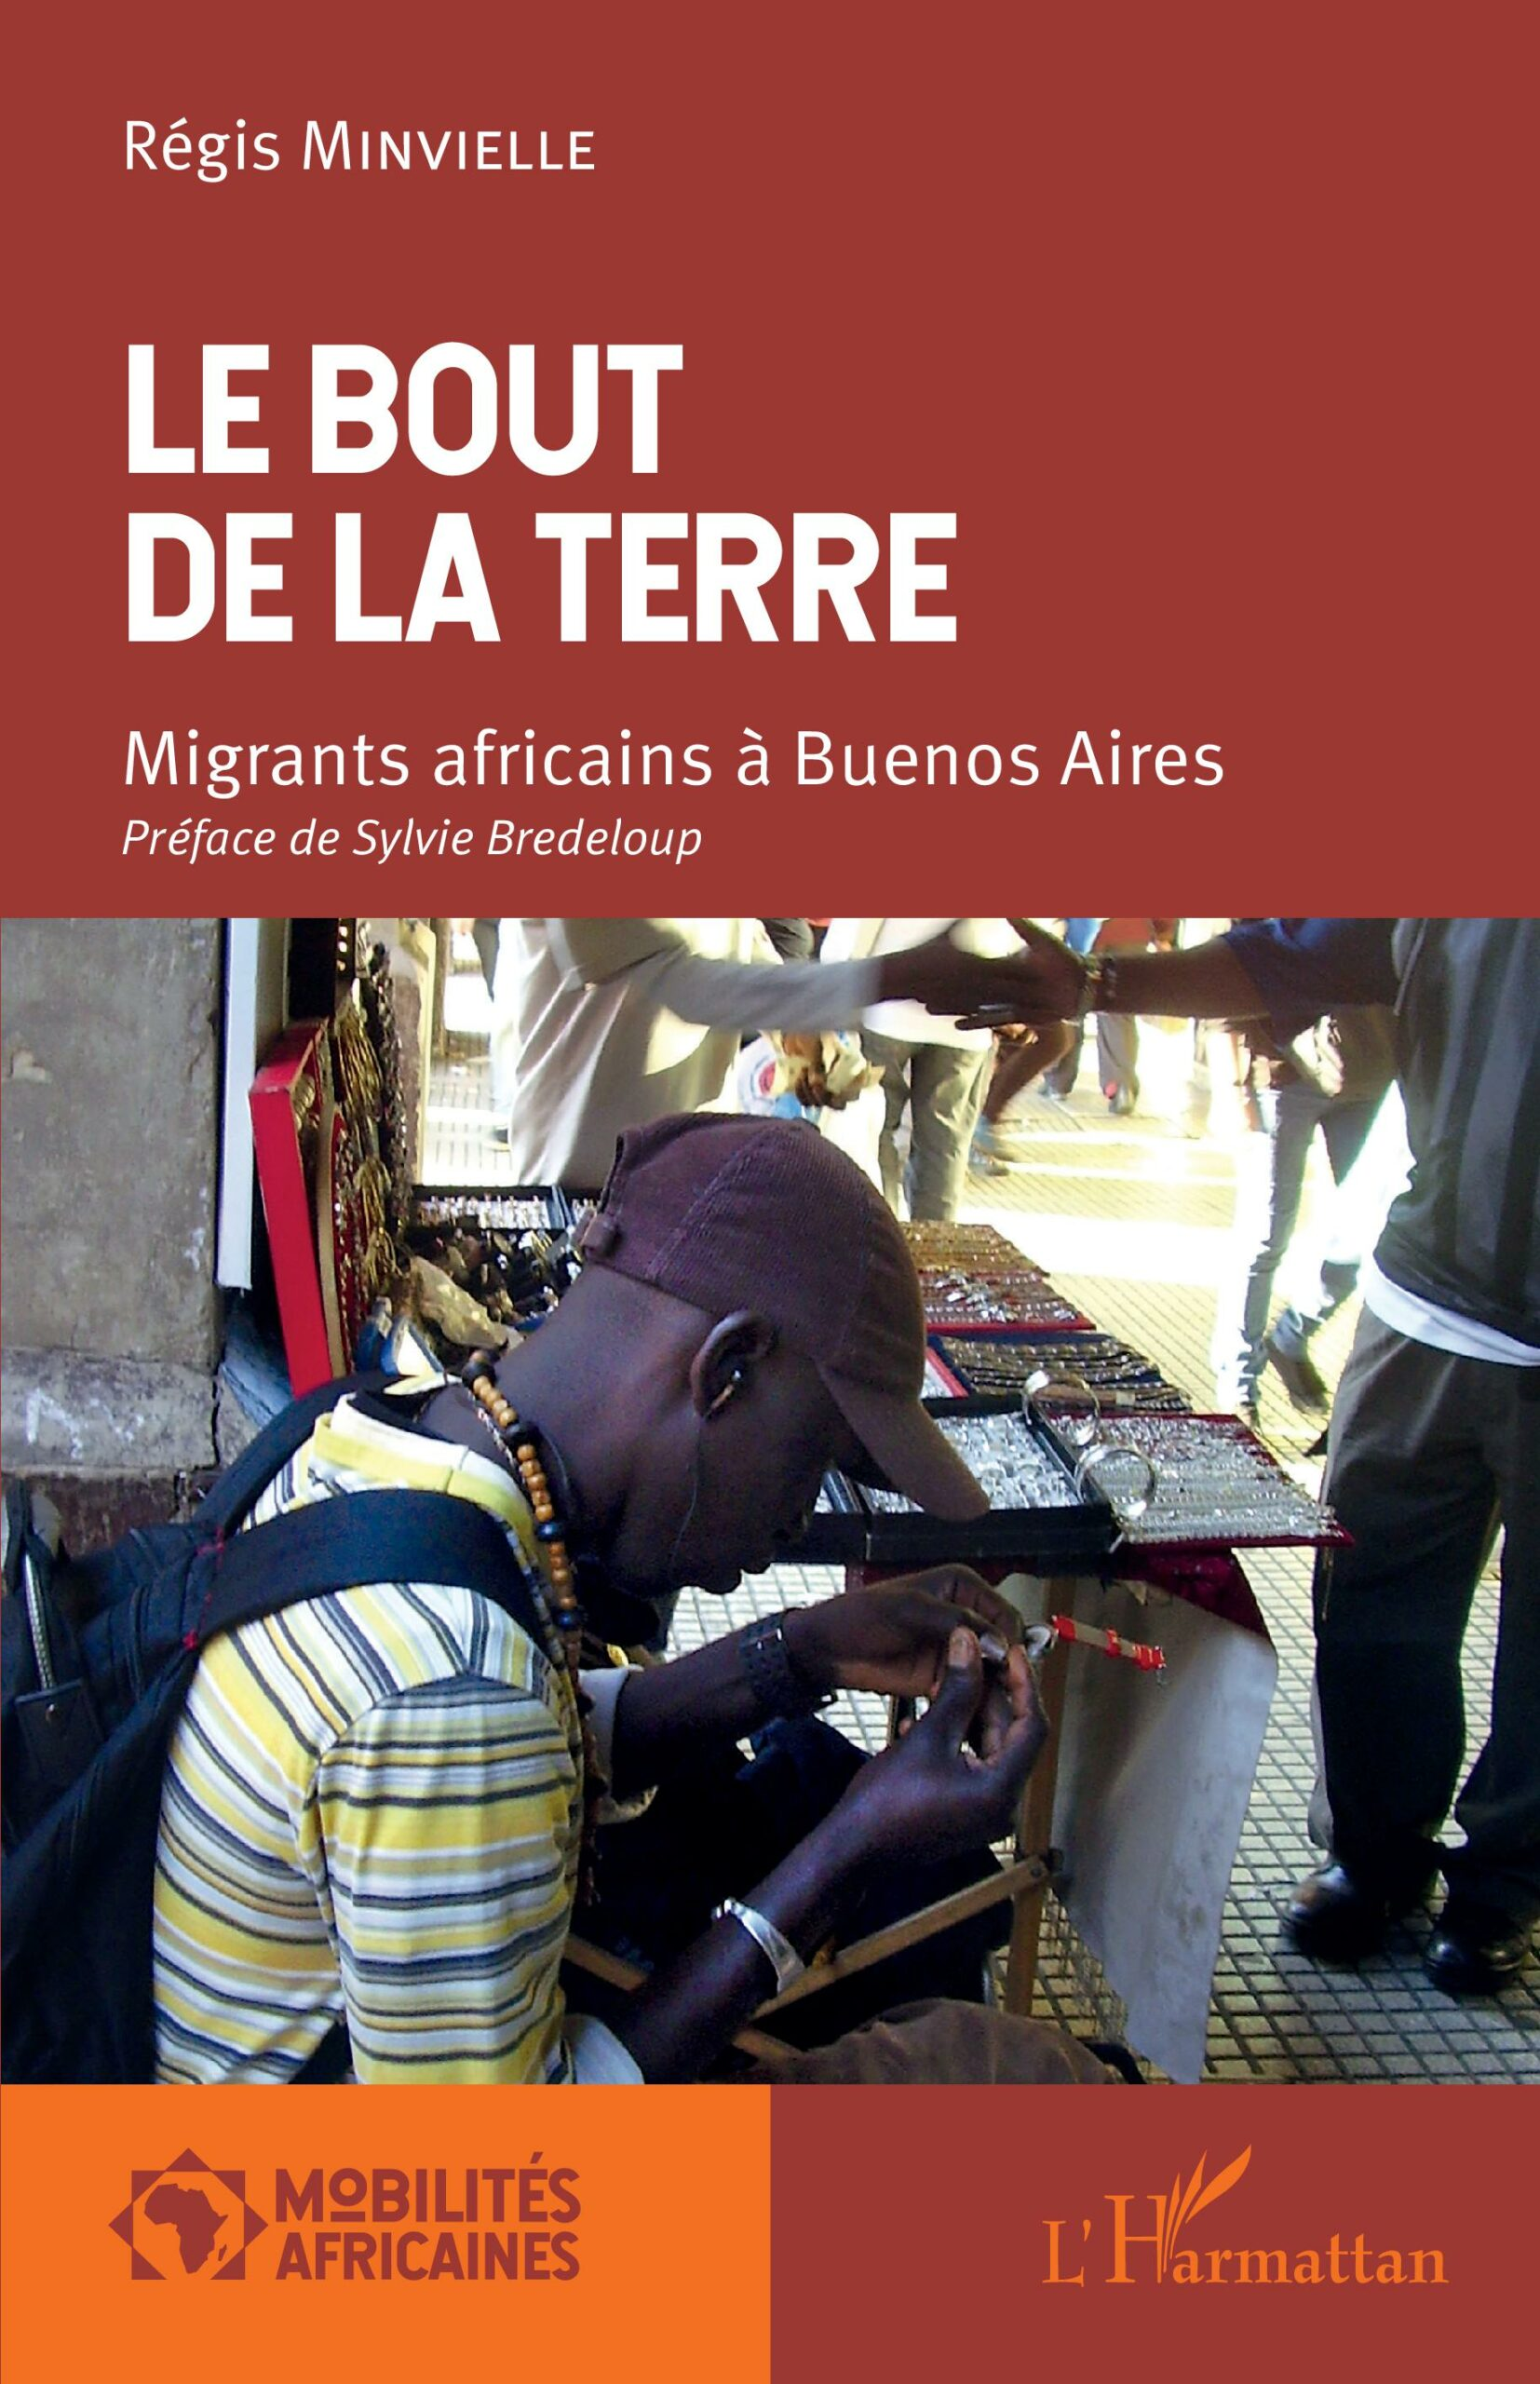 Collection «Mobilités Africaines»